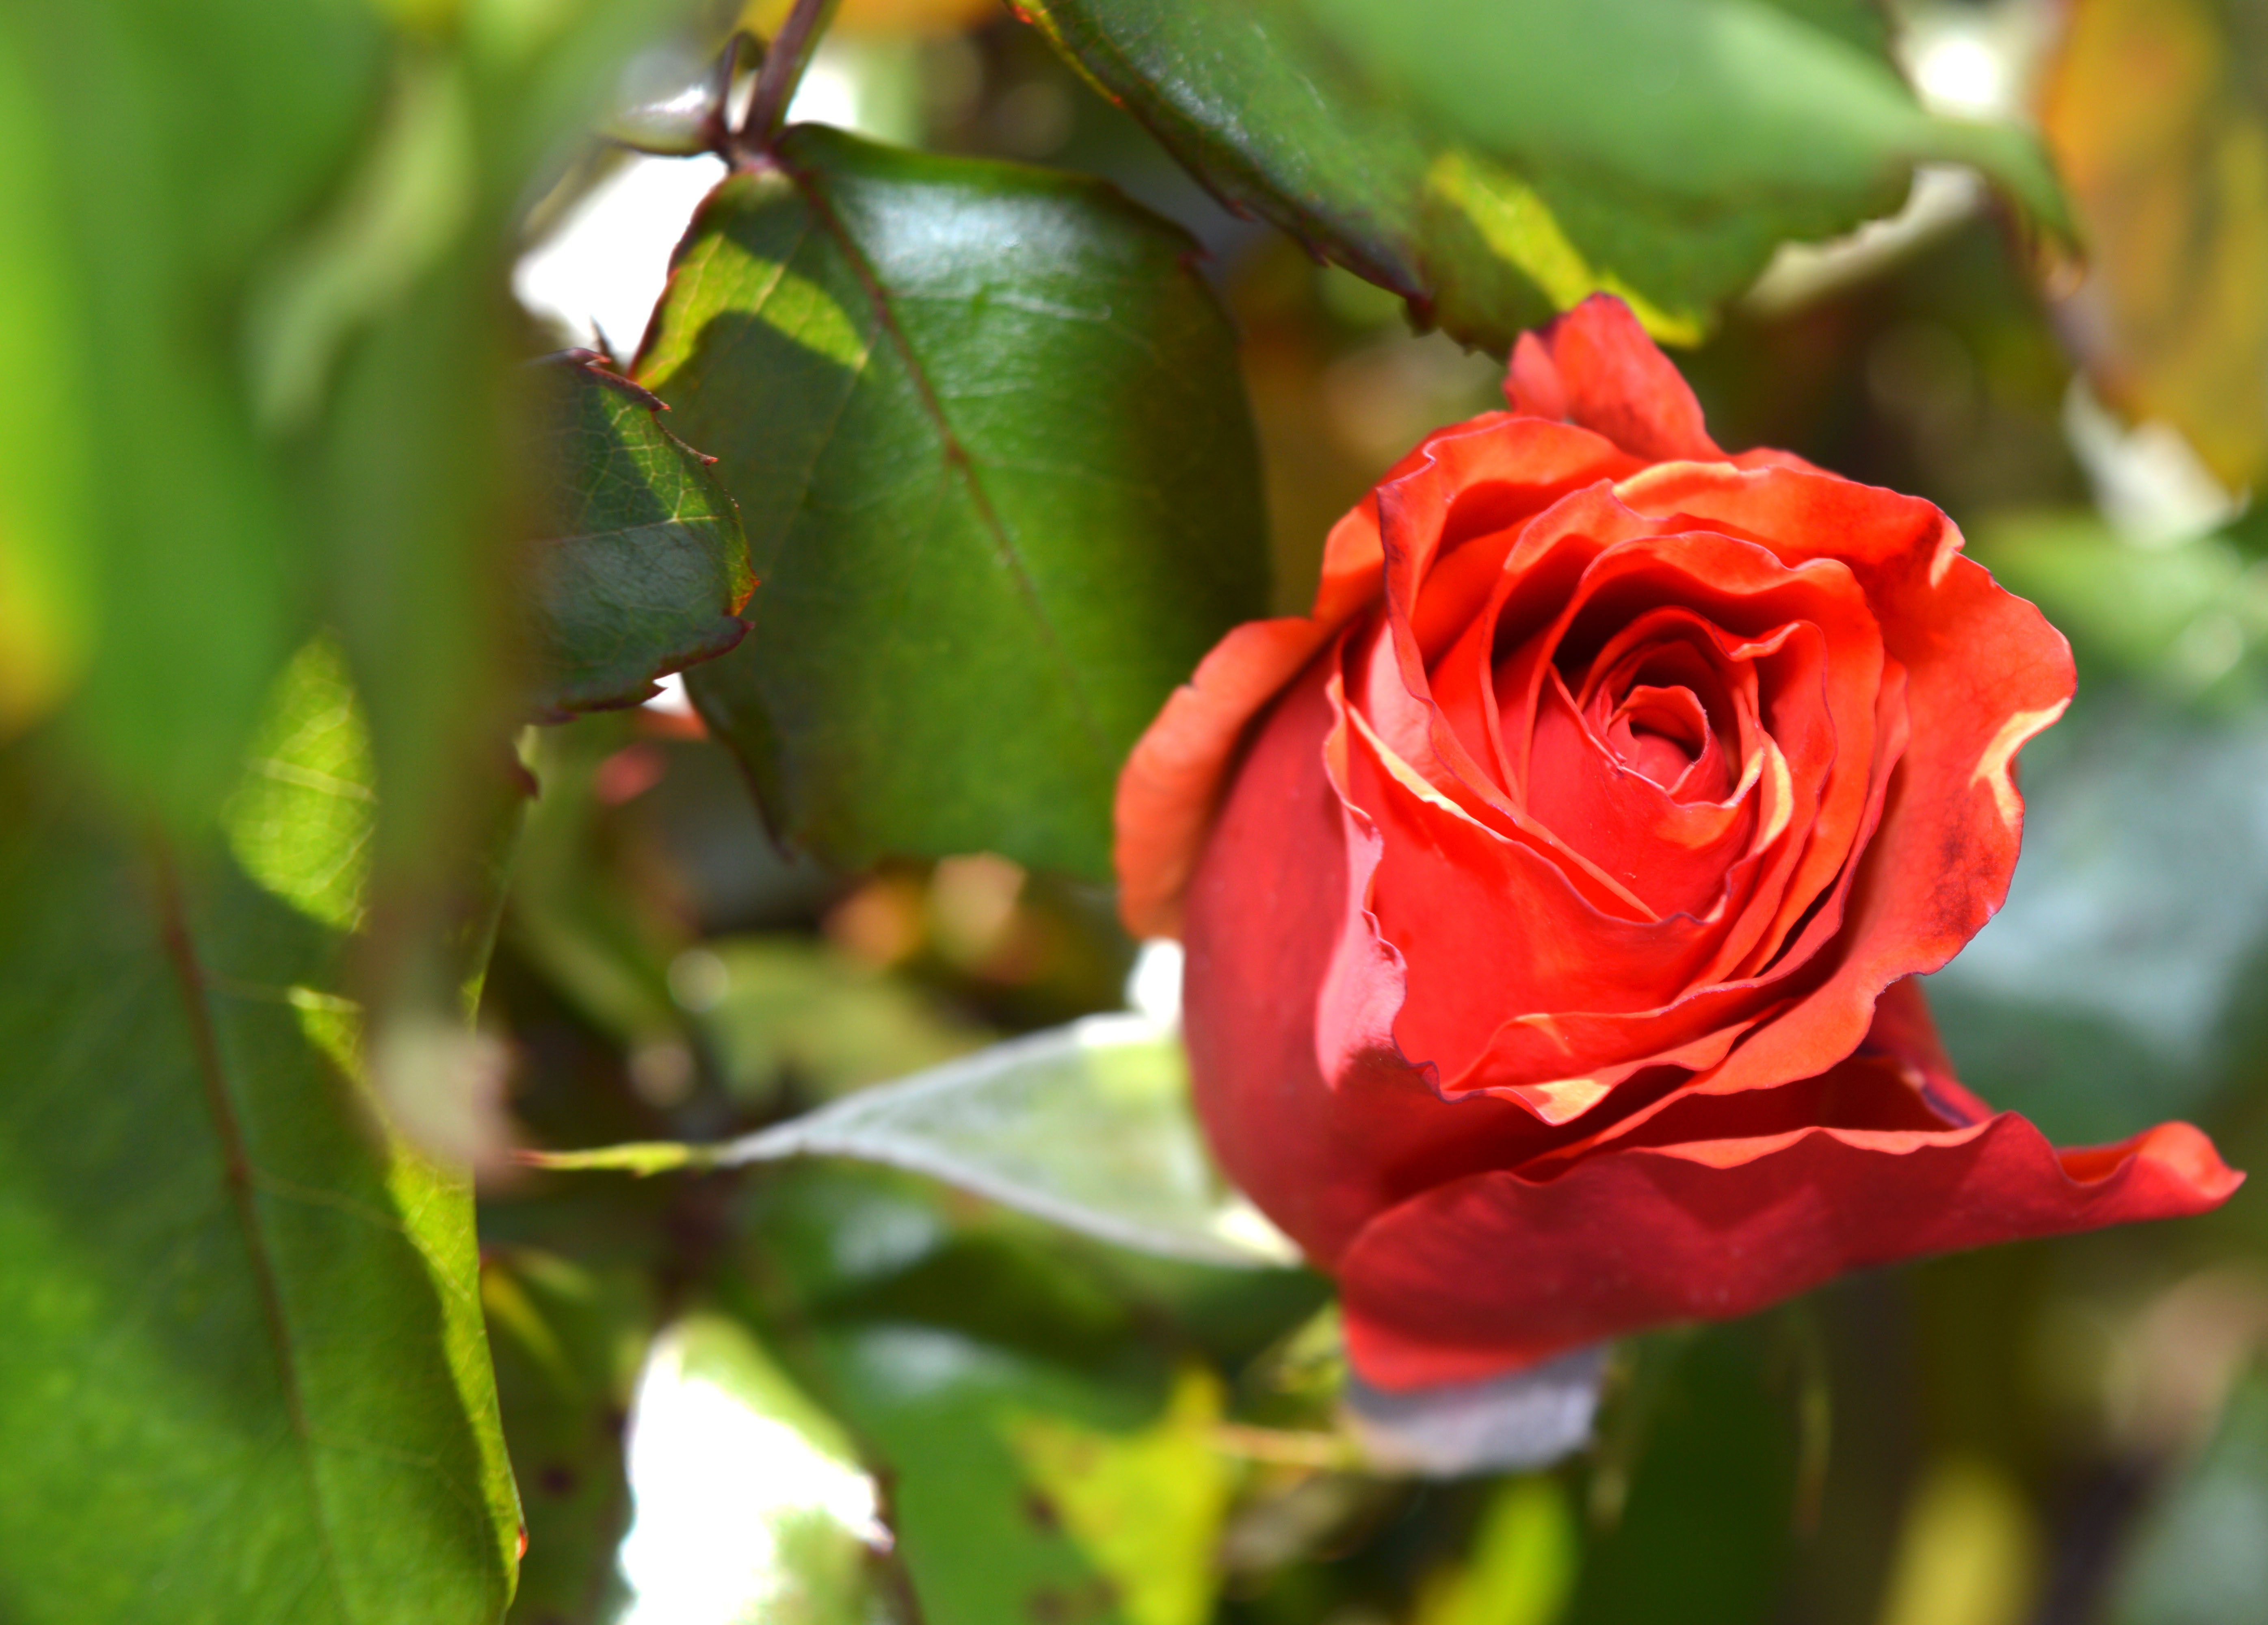 Red petaled rose photo